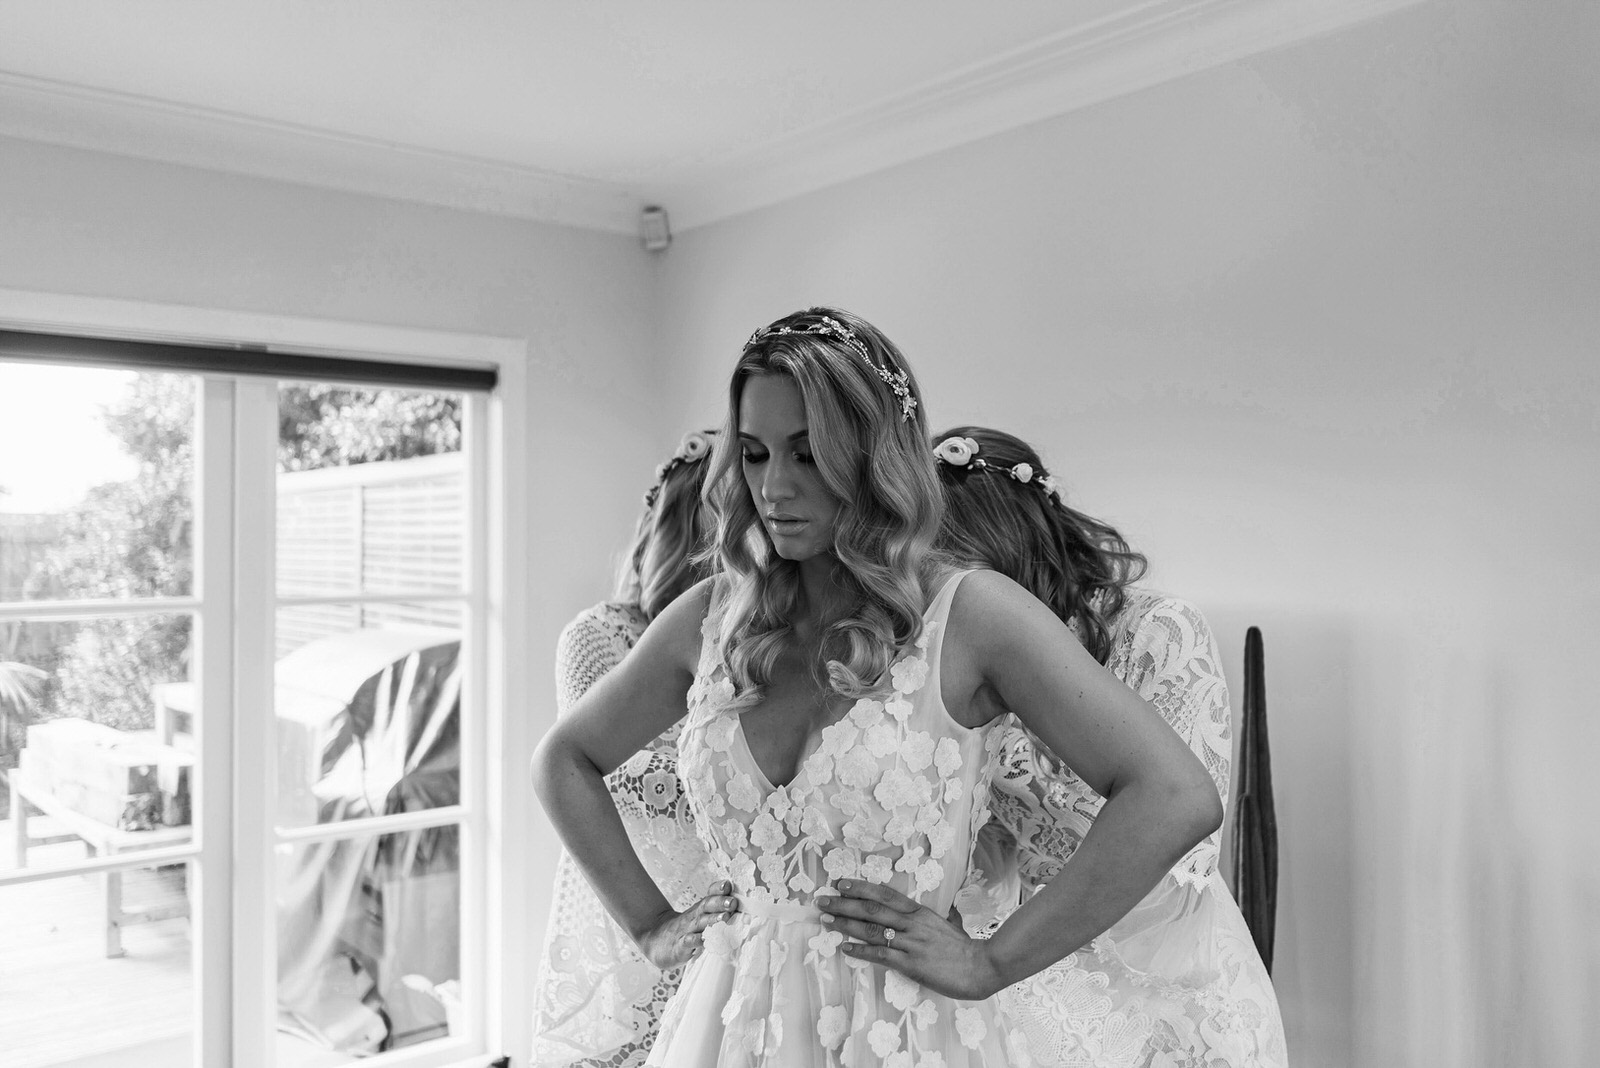 newfound-at-glendowie-auckland-wedding-photographers-031